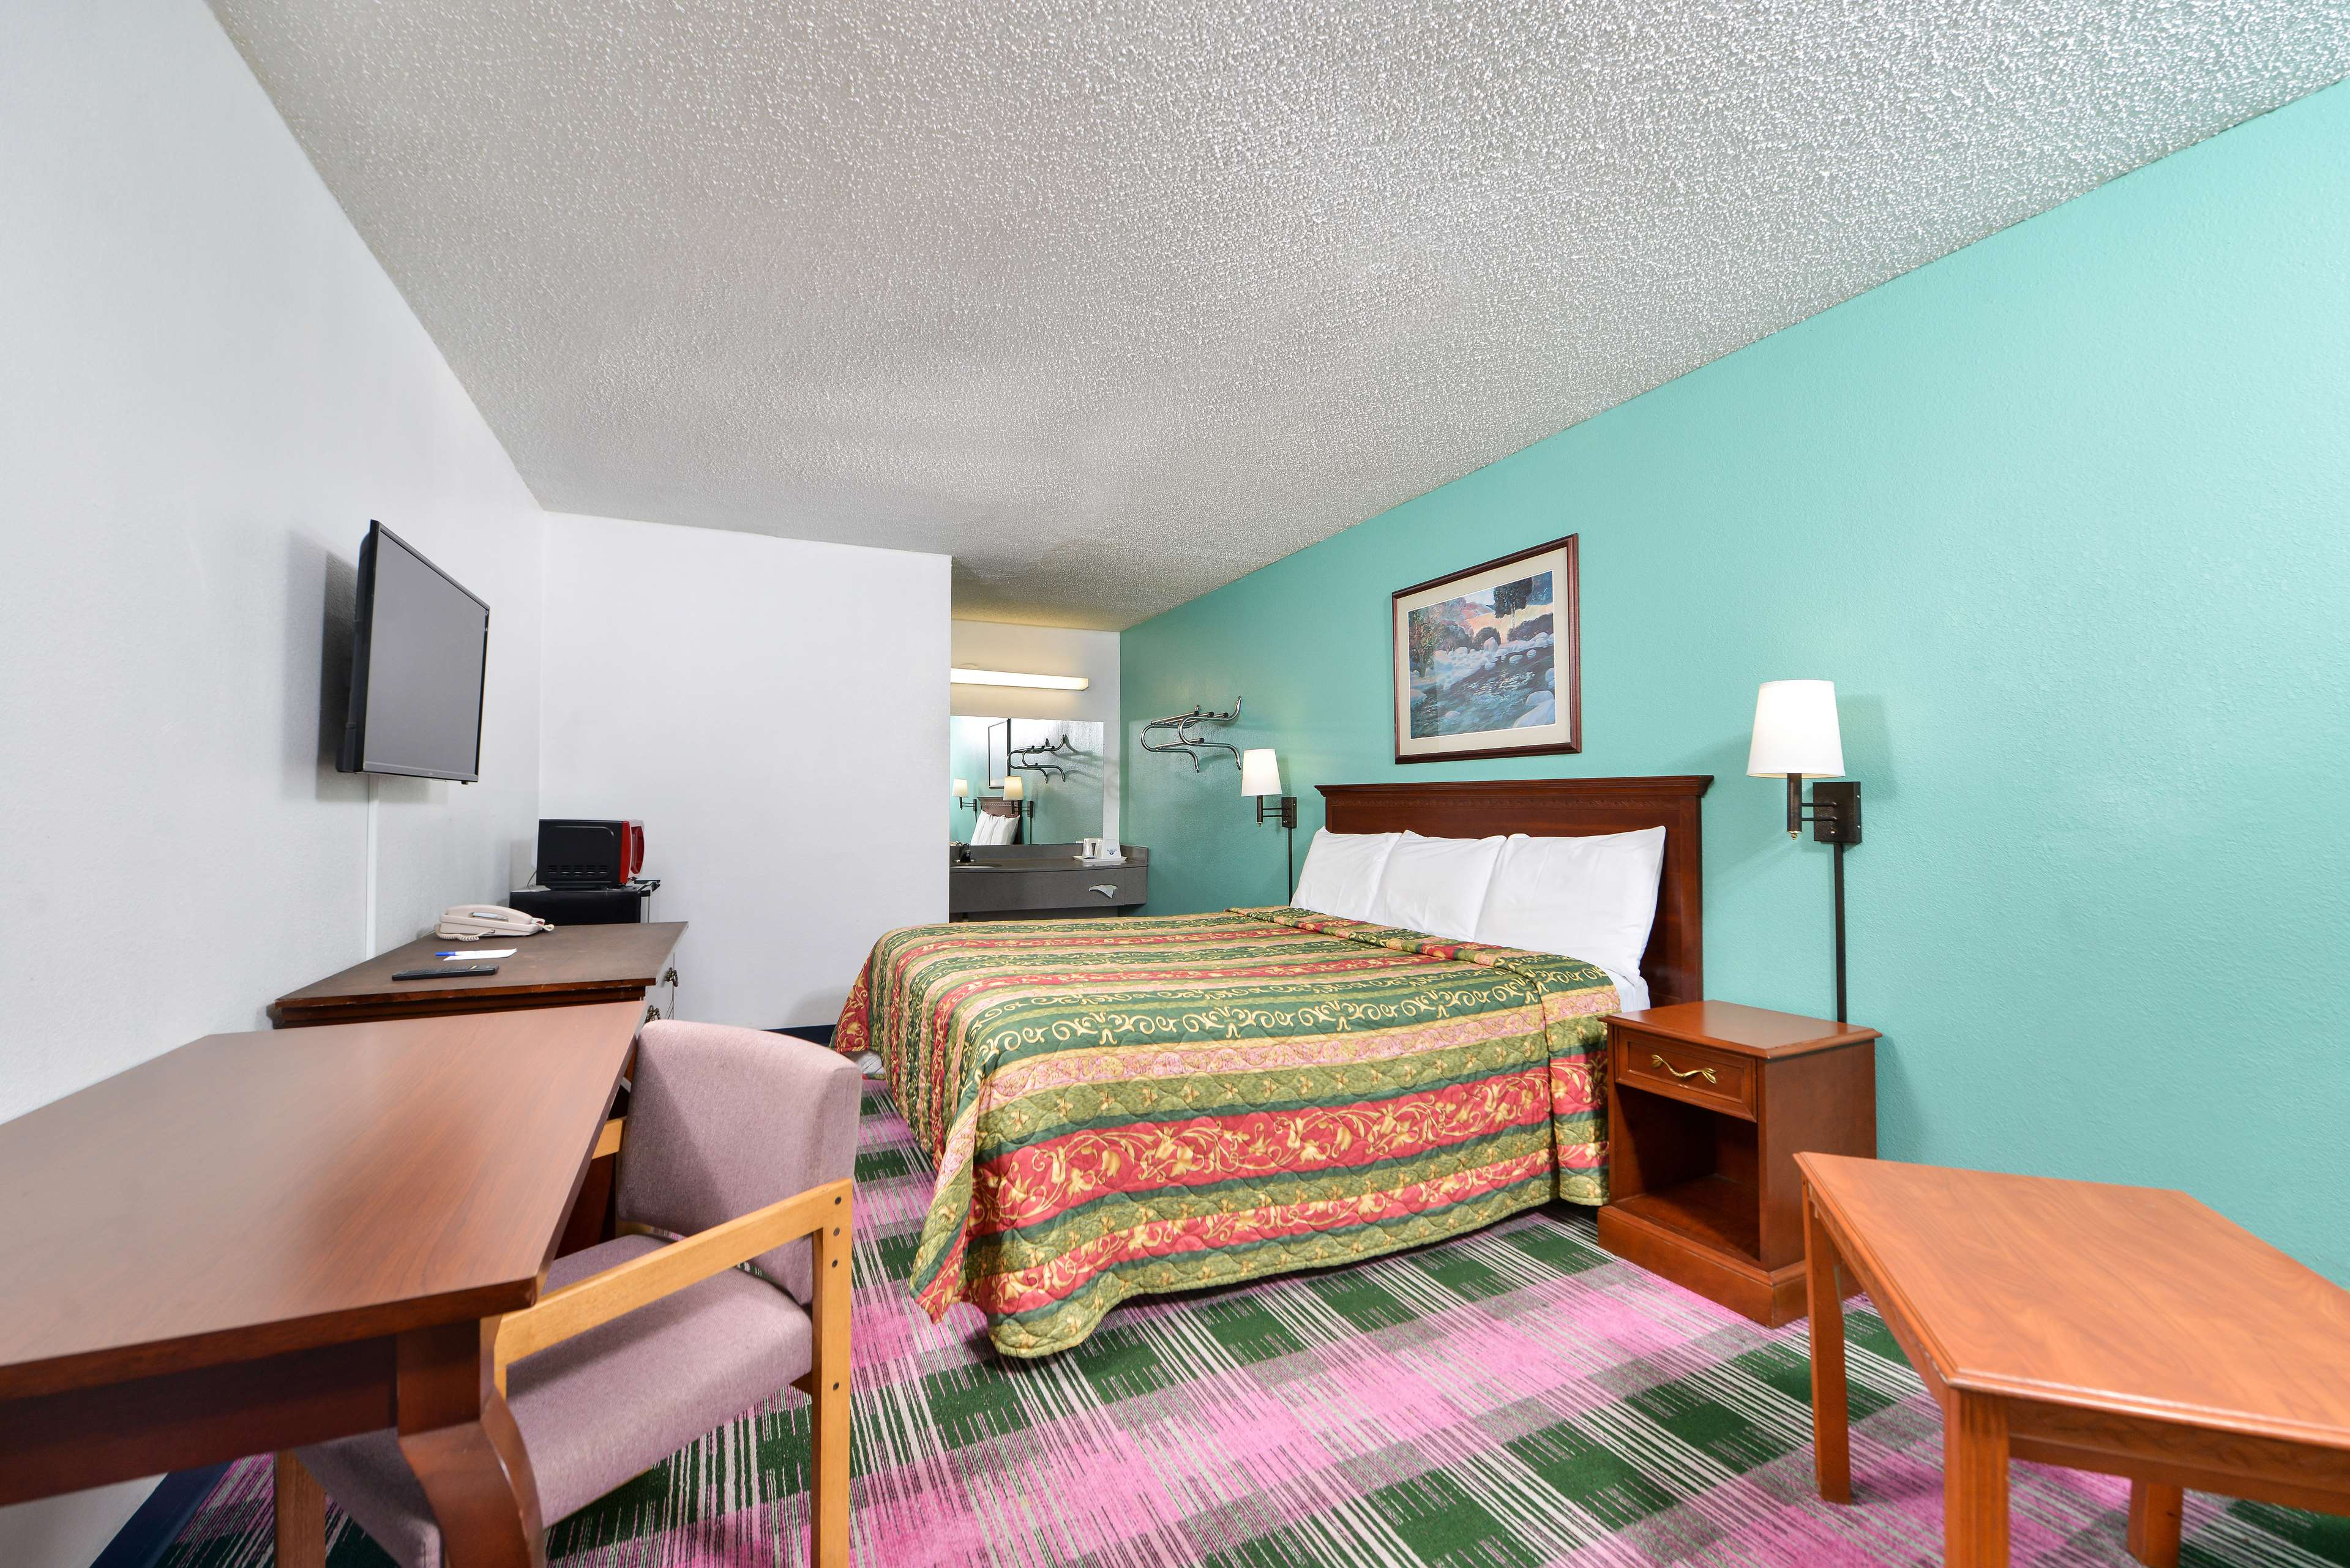 Americas Best Value Inn - Indy South image 6